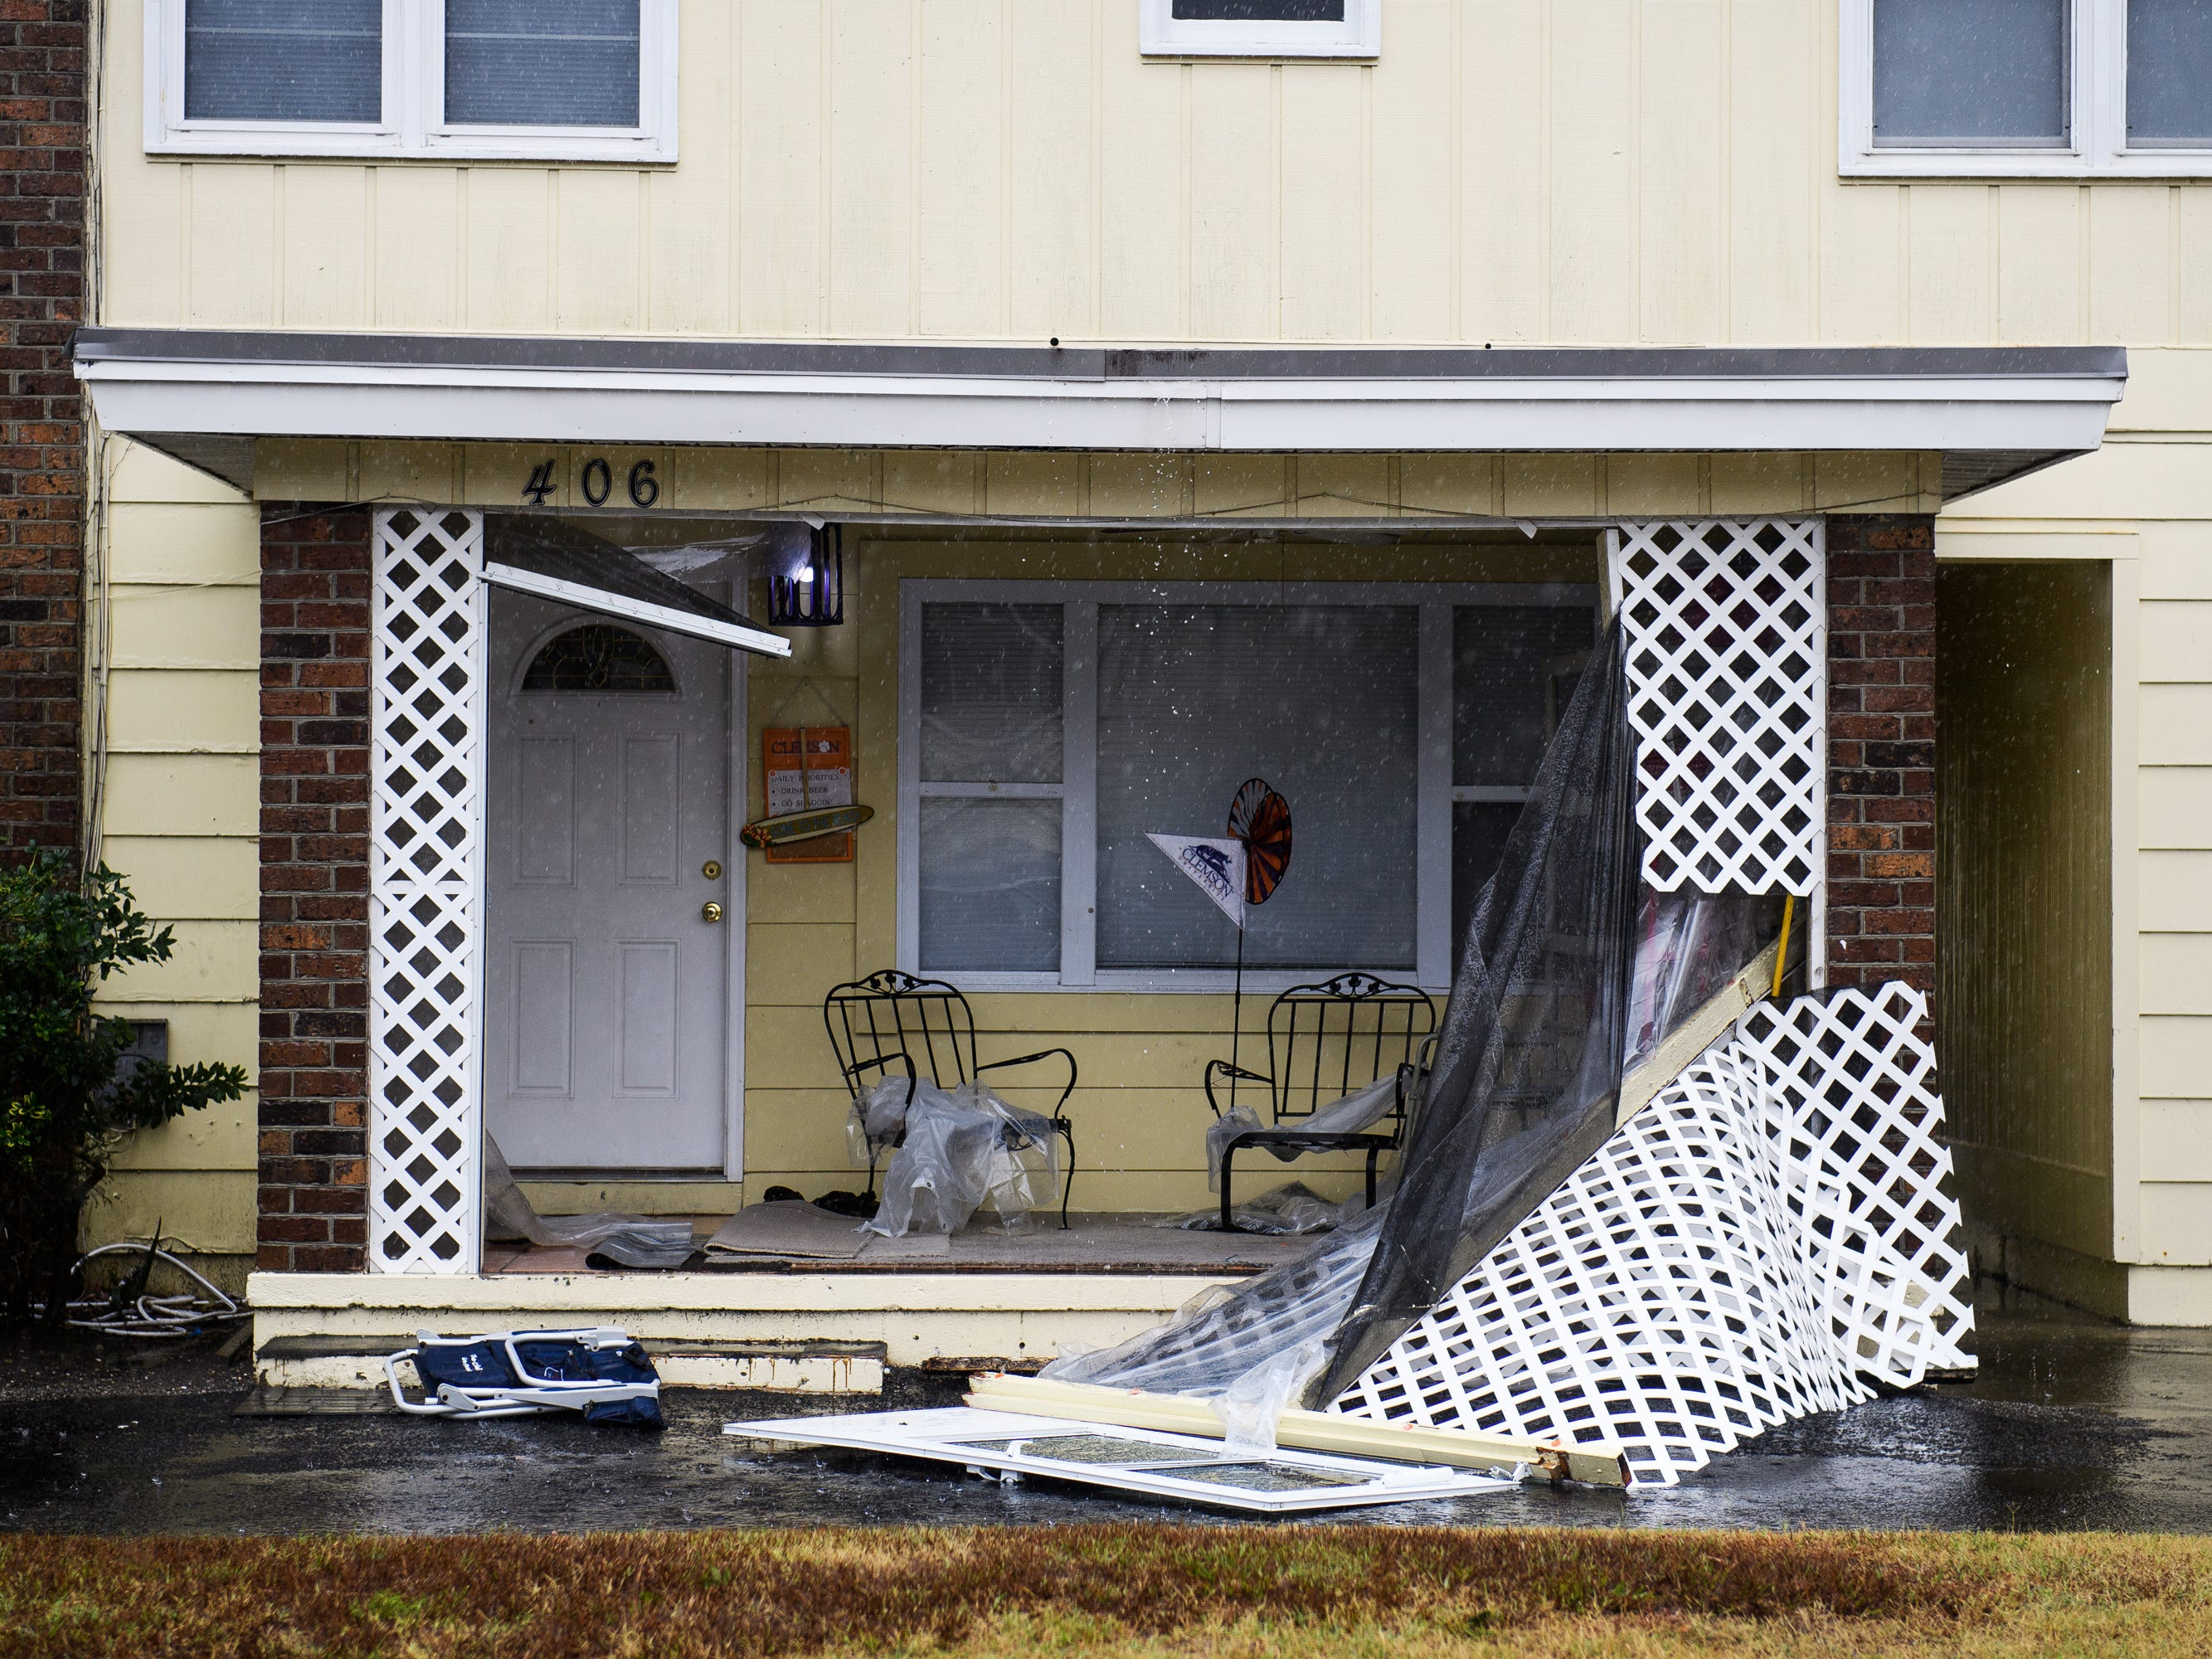 The sun room of a residence is exposed due to high winds from Hurricane Florence in North Myrtle Beach on Friday, Sept. 14, 2018.